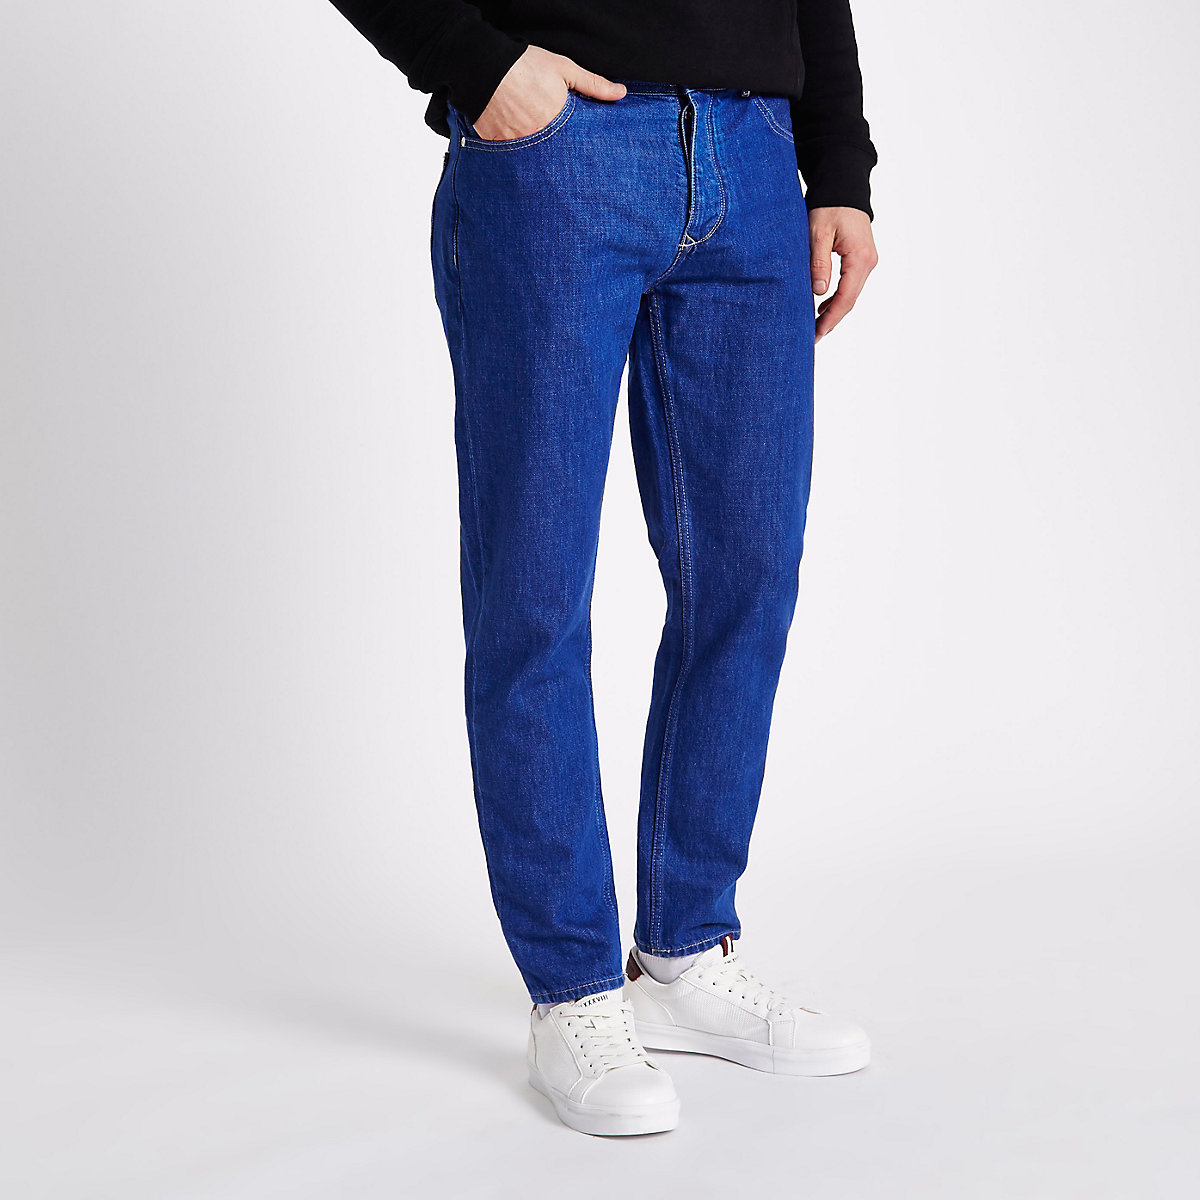 Bright blue Jimmy tapered leg jeans